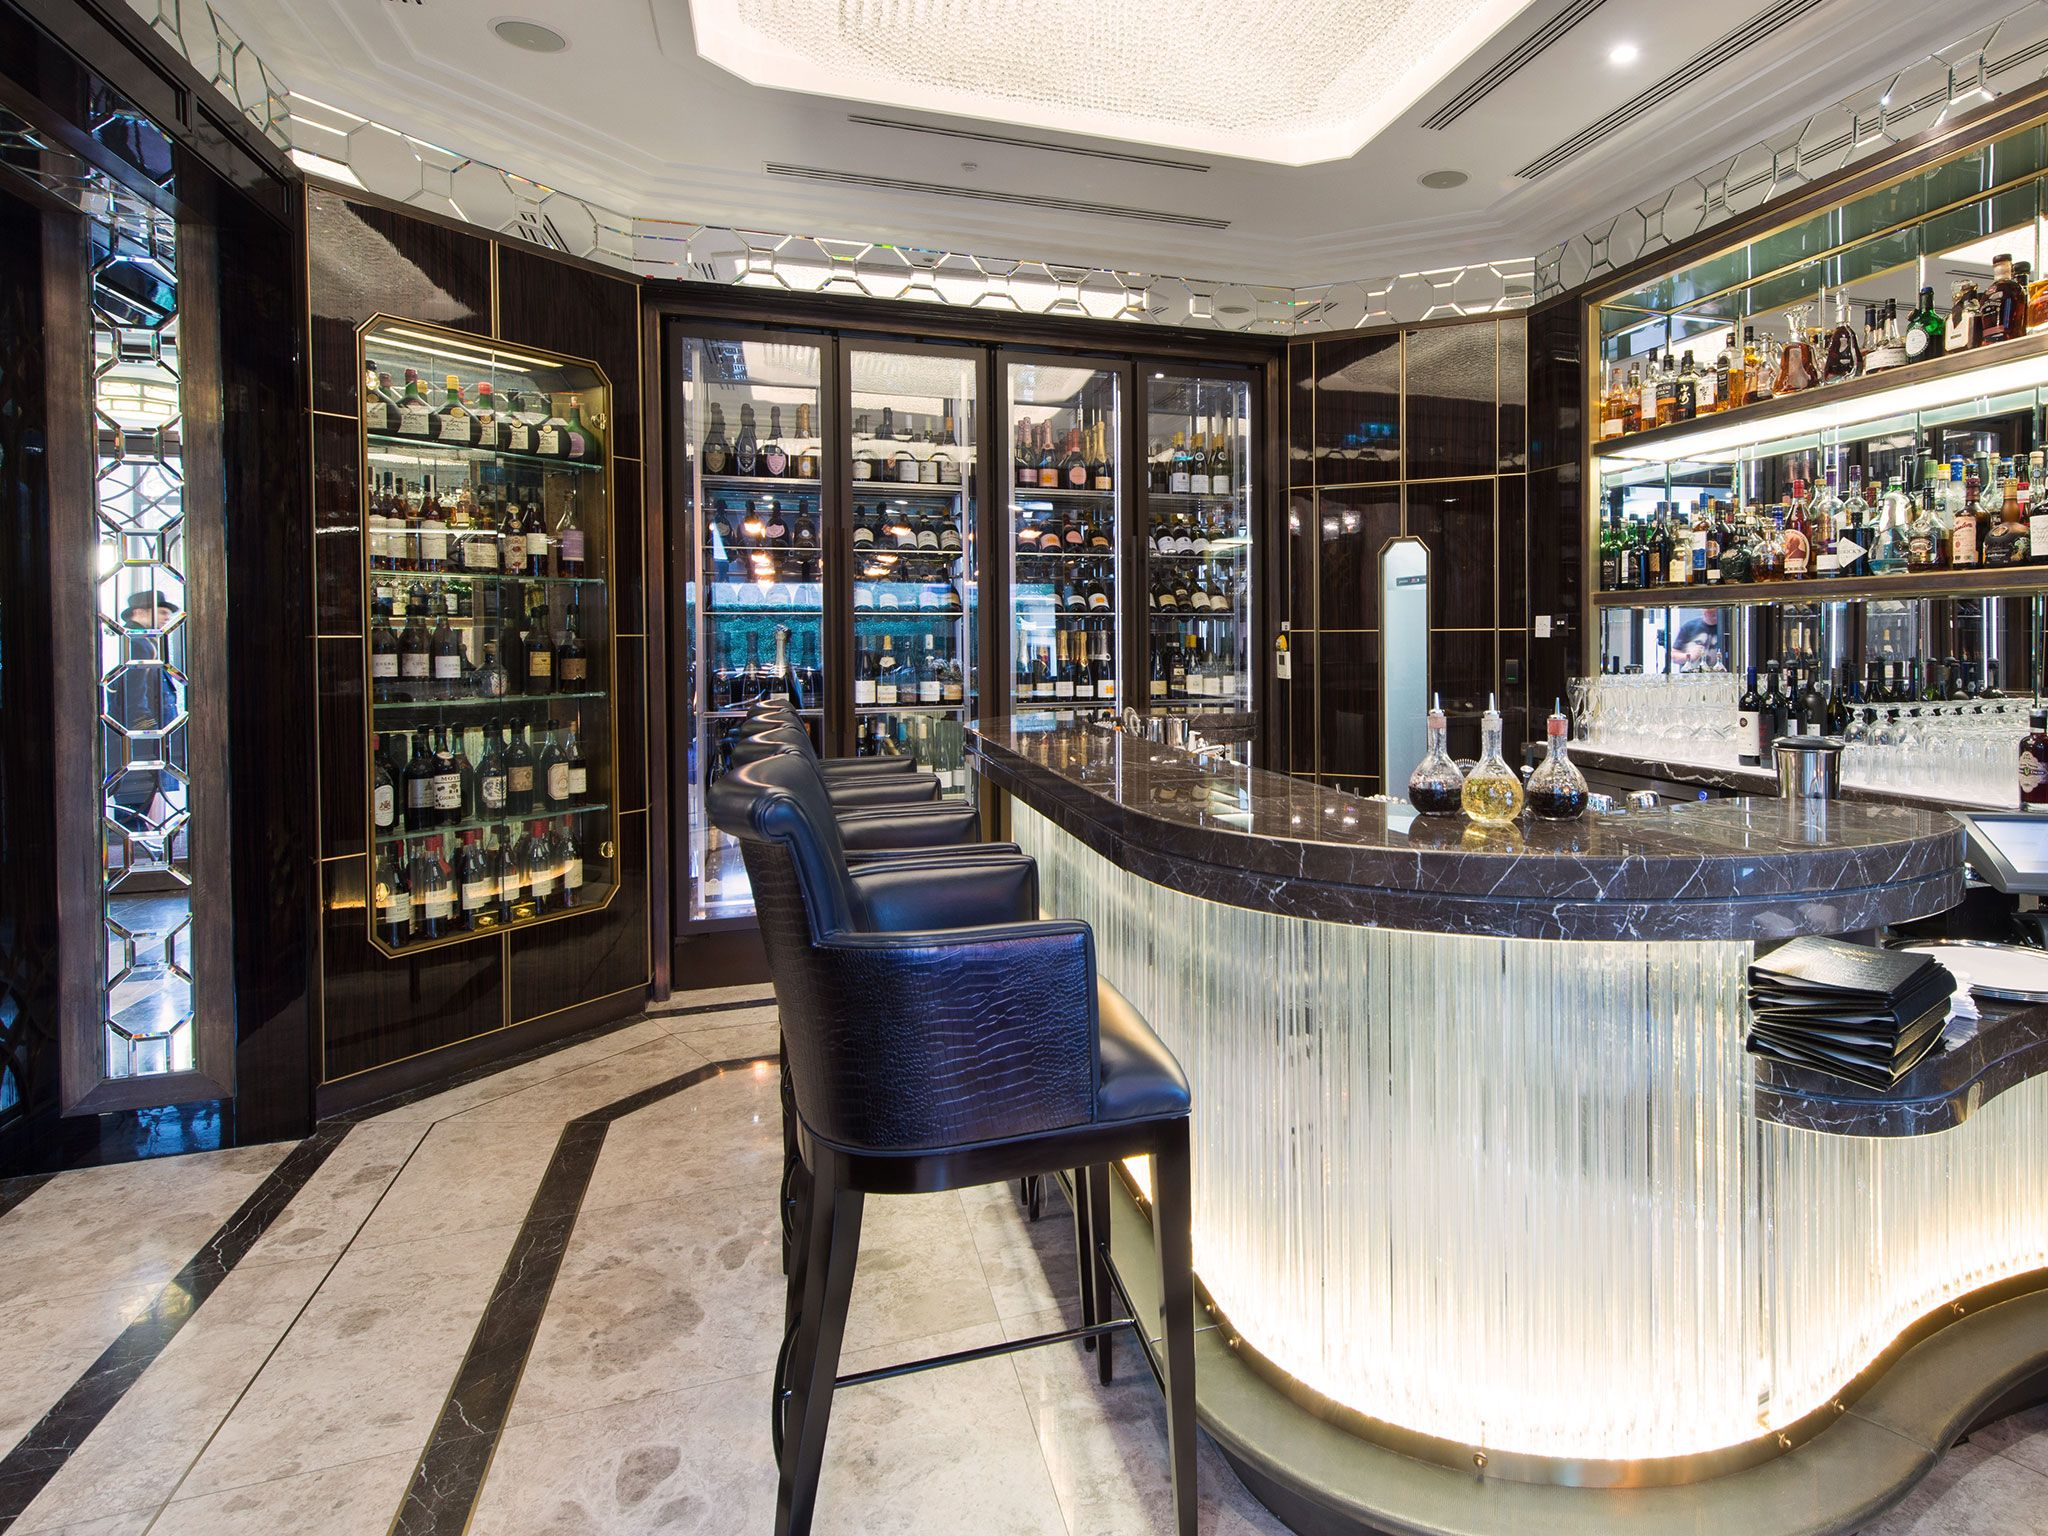 Crystal Bar at The Wellesley Knightsbridge